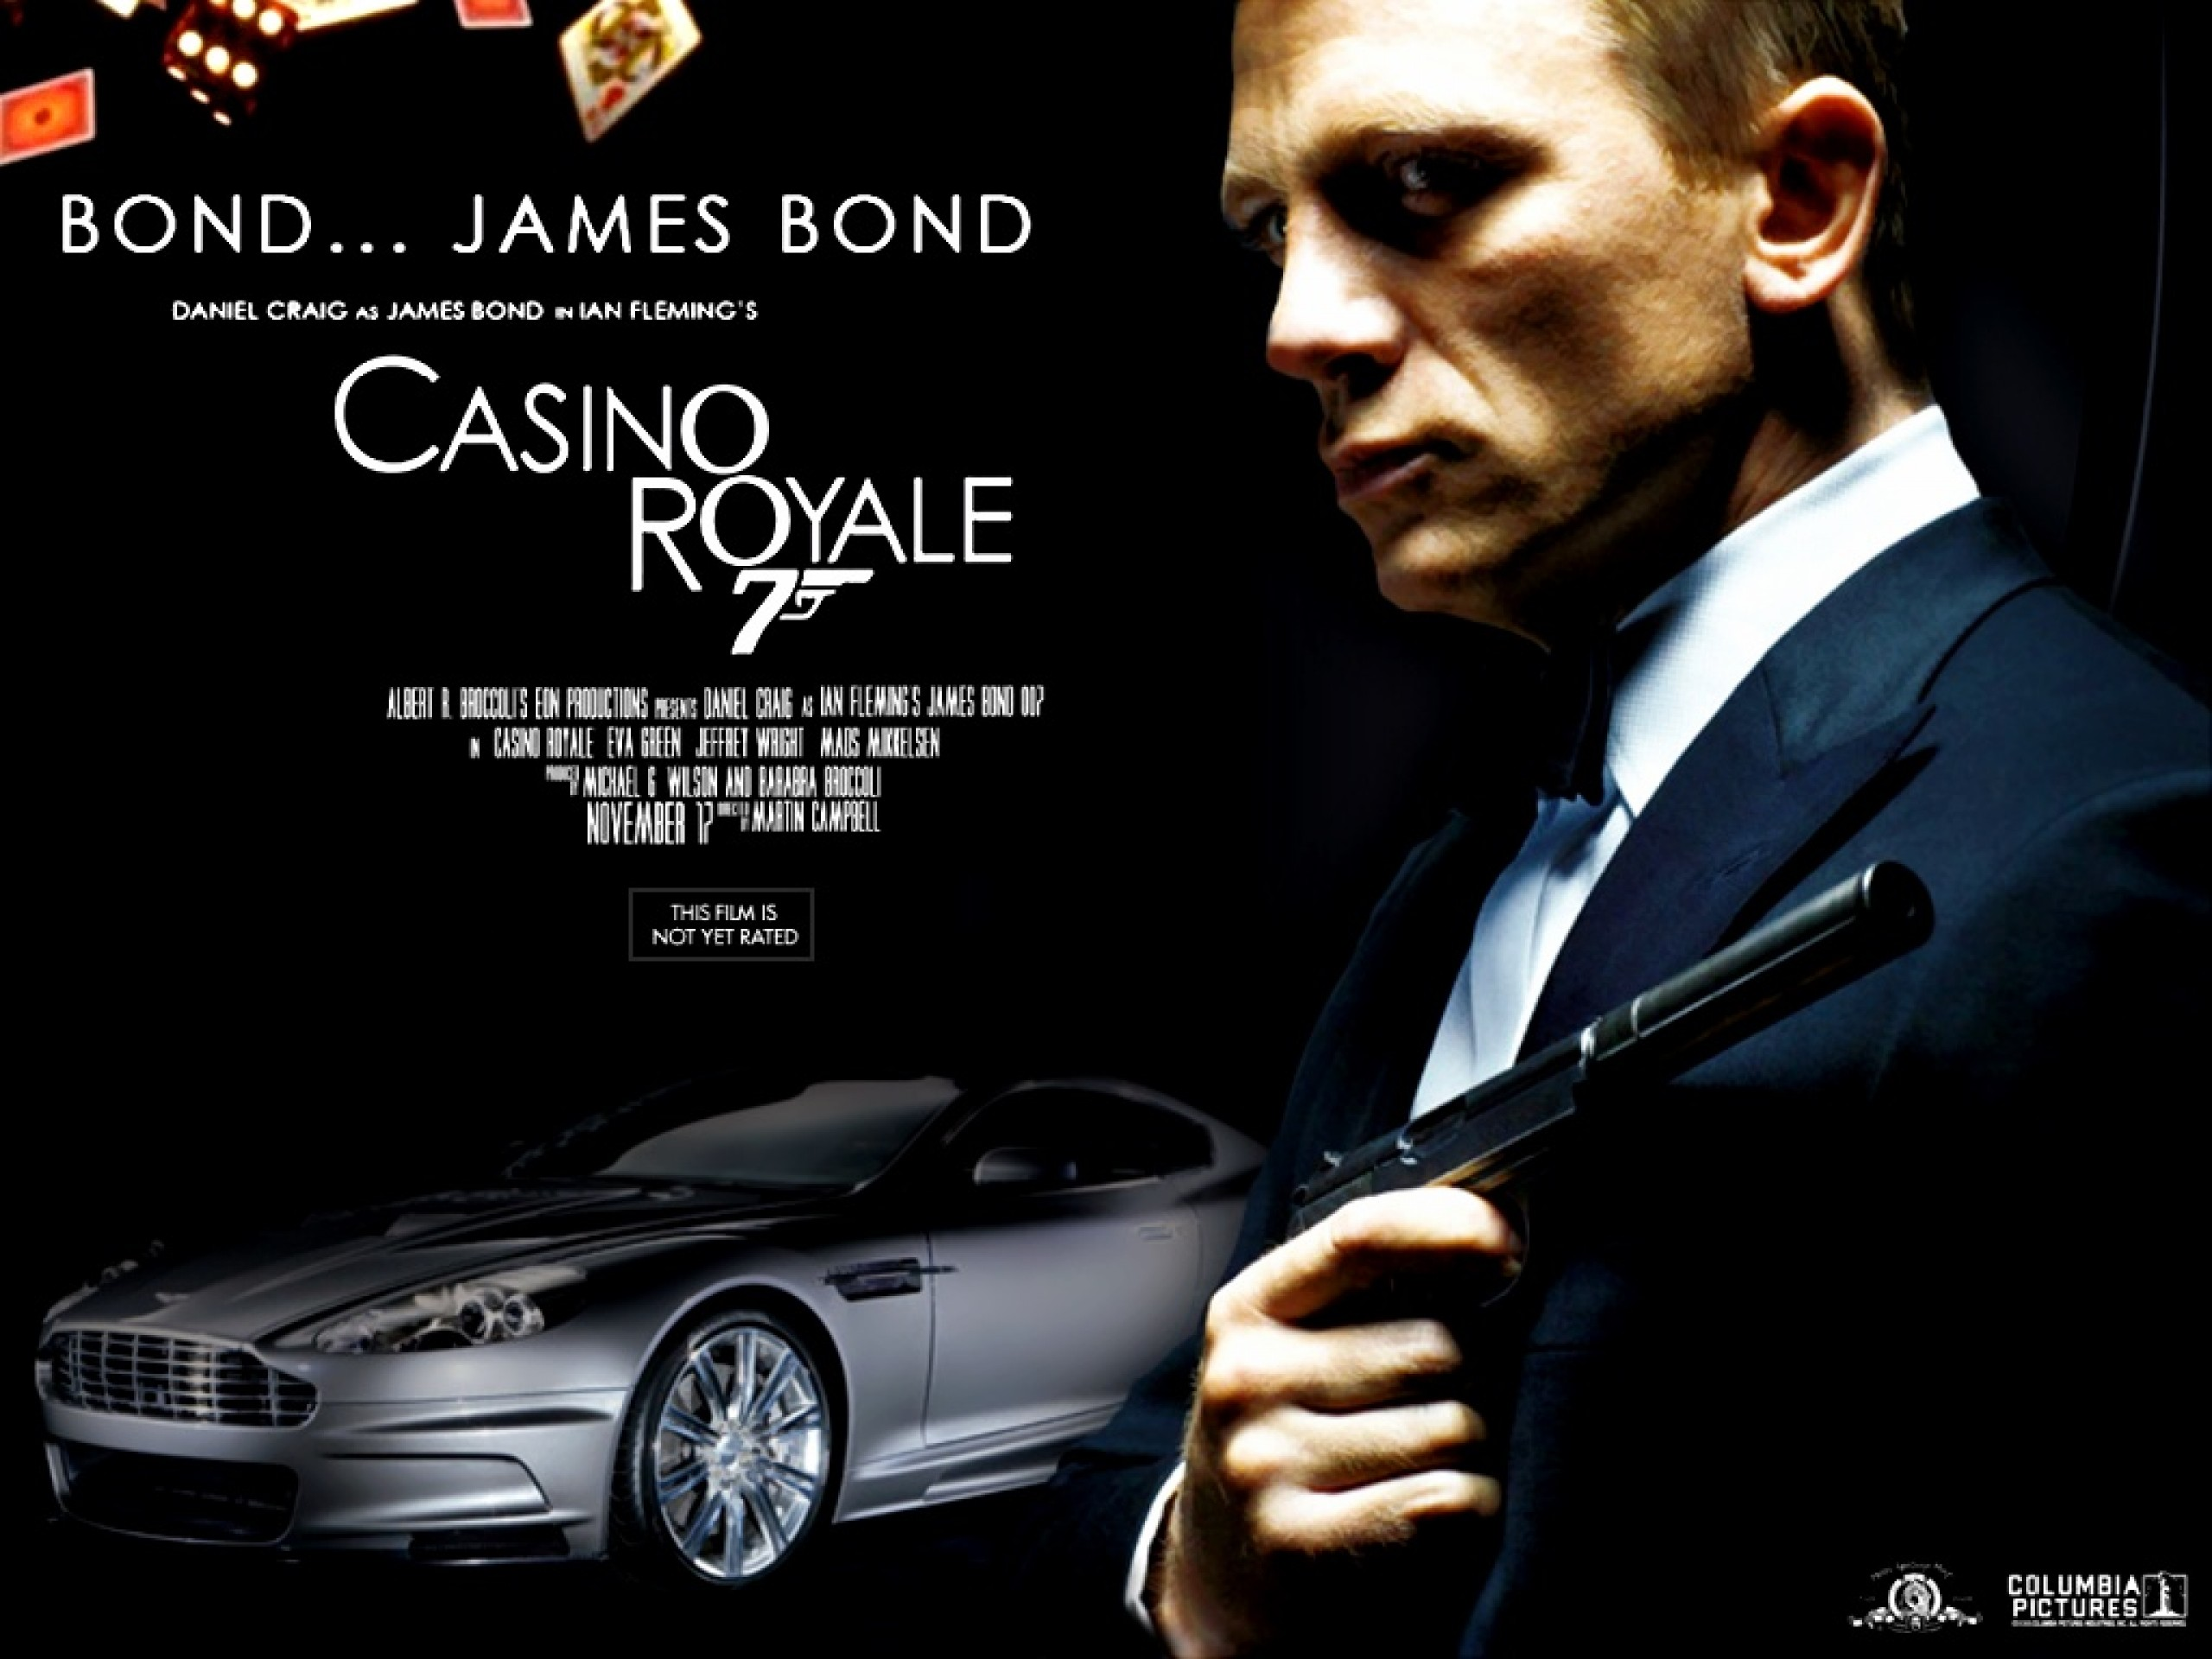 casino royal james bond online